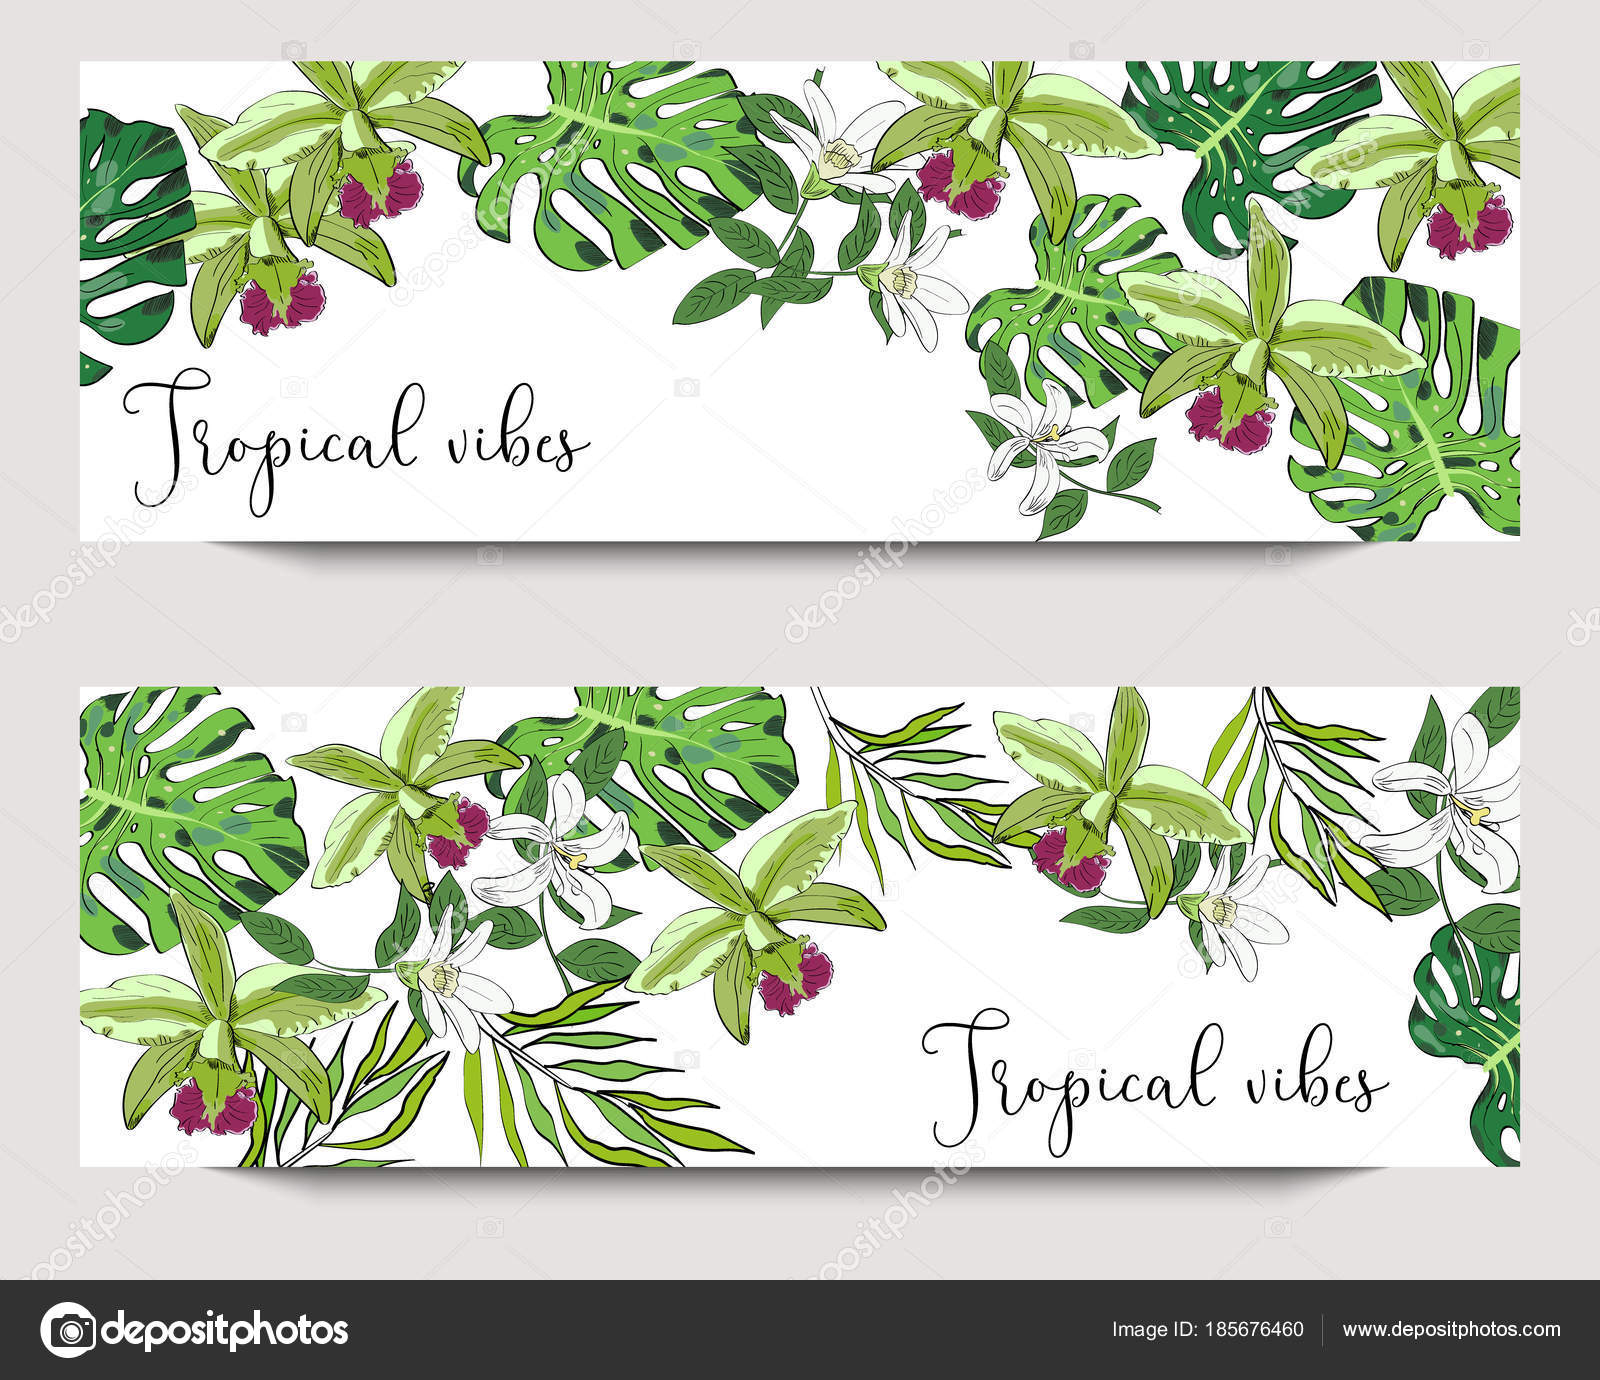 Vector Horizontal Exotic Collection Banners With Hand Drawn Tropical Leaves And Flowers On White Background Design For Packaging Tea Shop Drink Menu Homeopathy And Health Care Products Stock Vector C Tetianadudarik 185676460